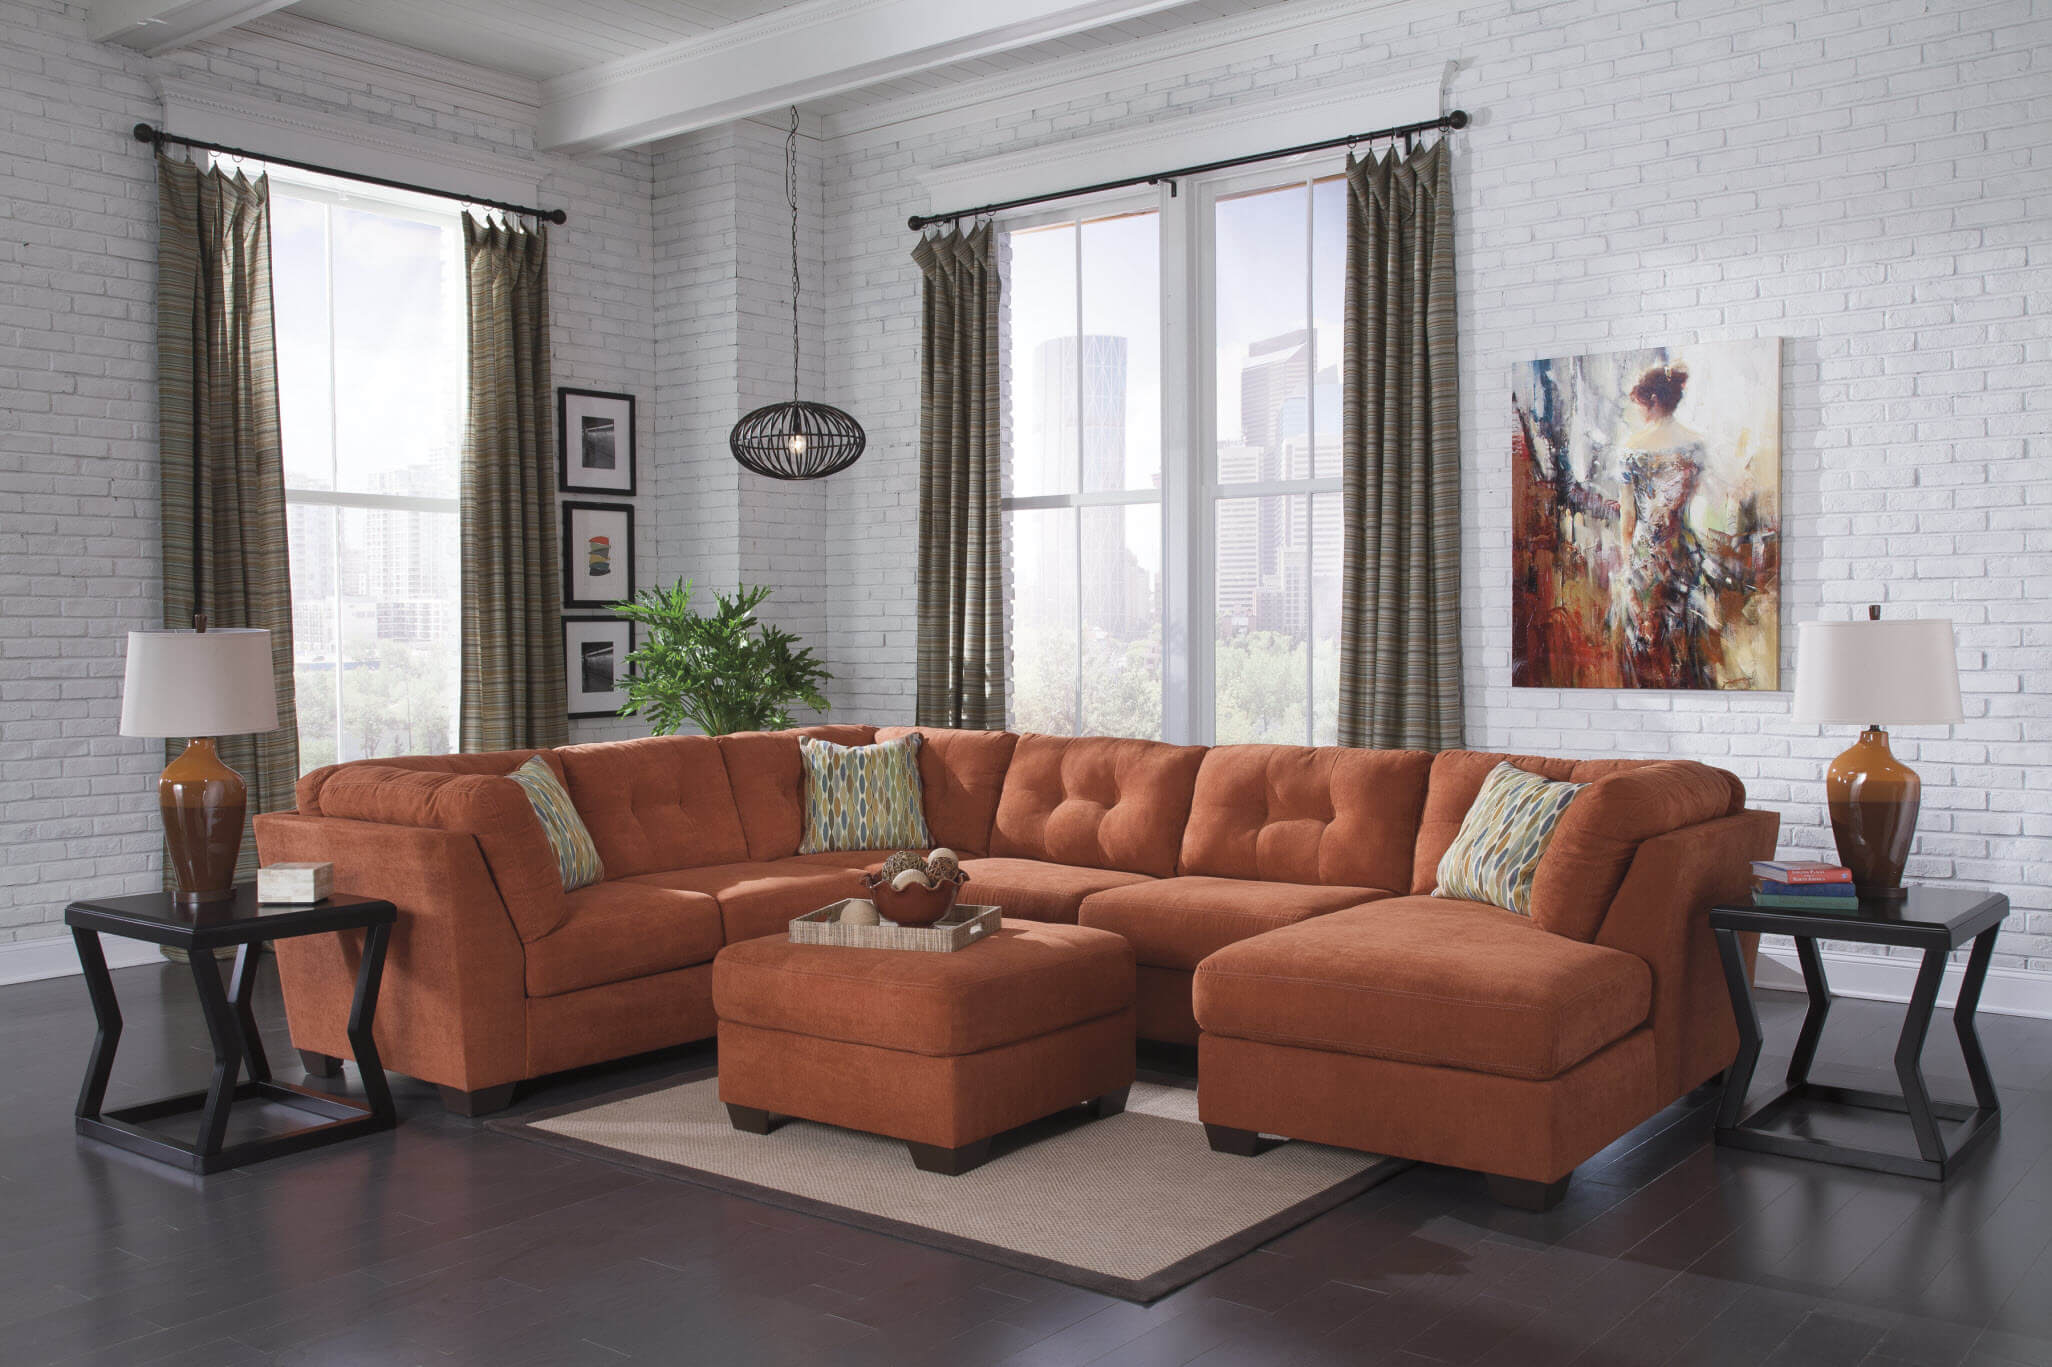 19701 Delta City Rust Sectional Disconinued